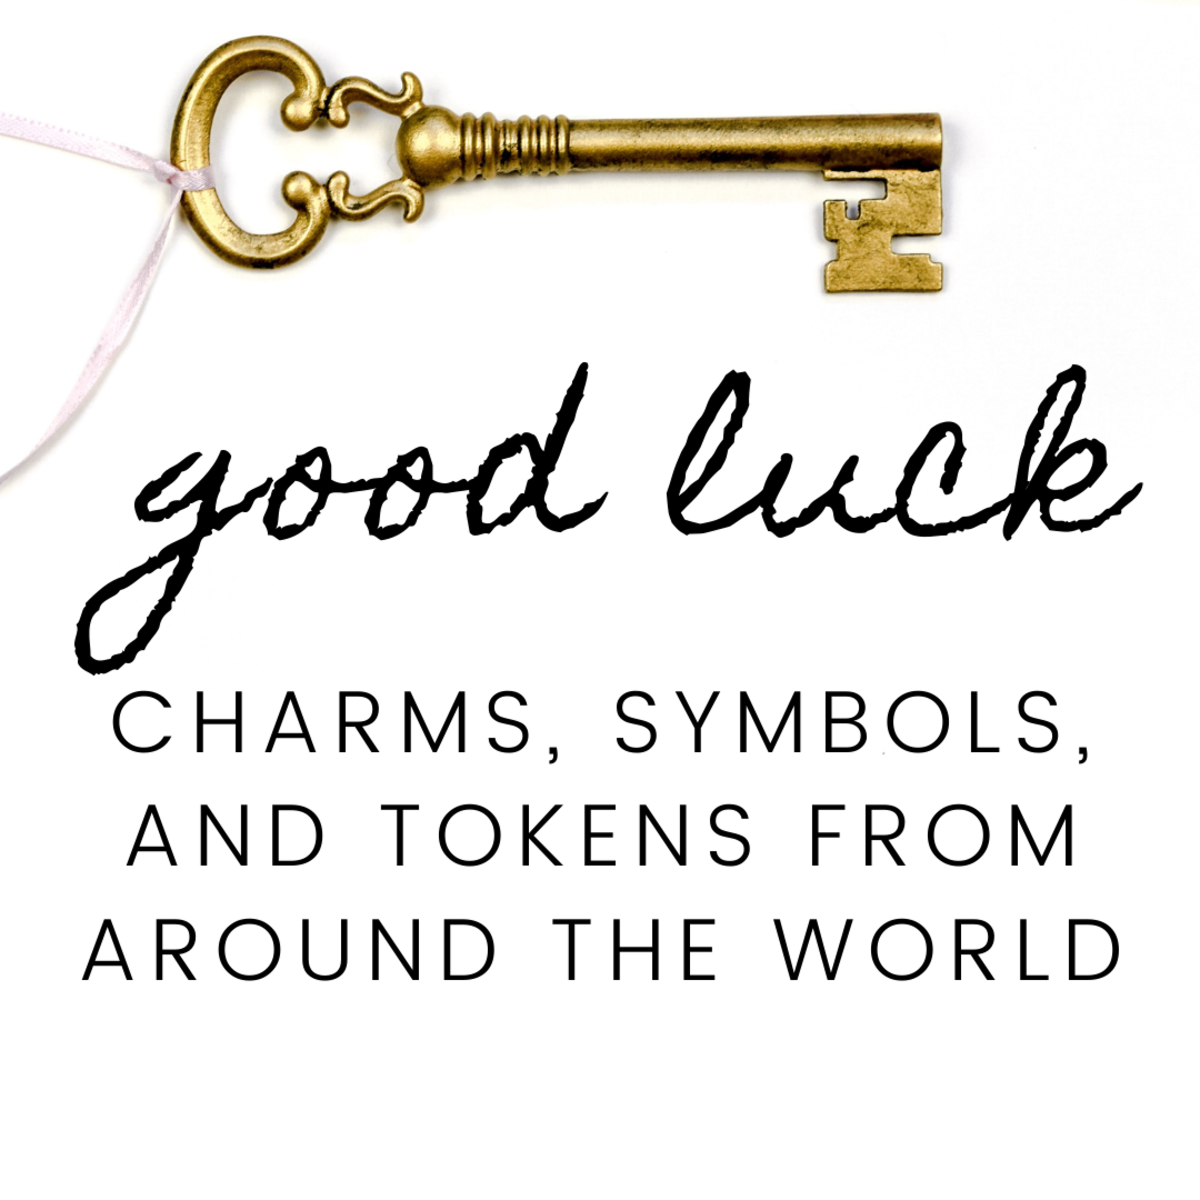 50 Good Luck Signs and Symbols From Around the World